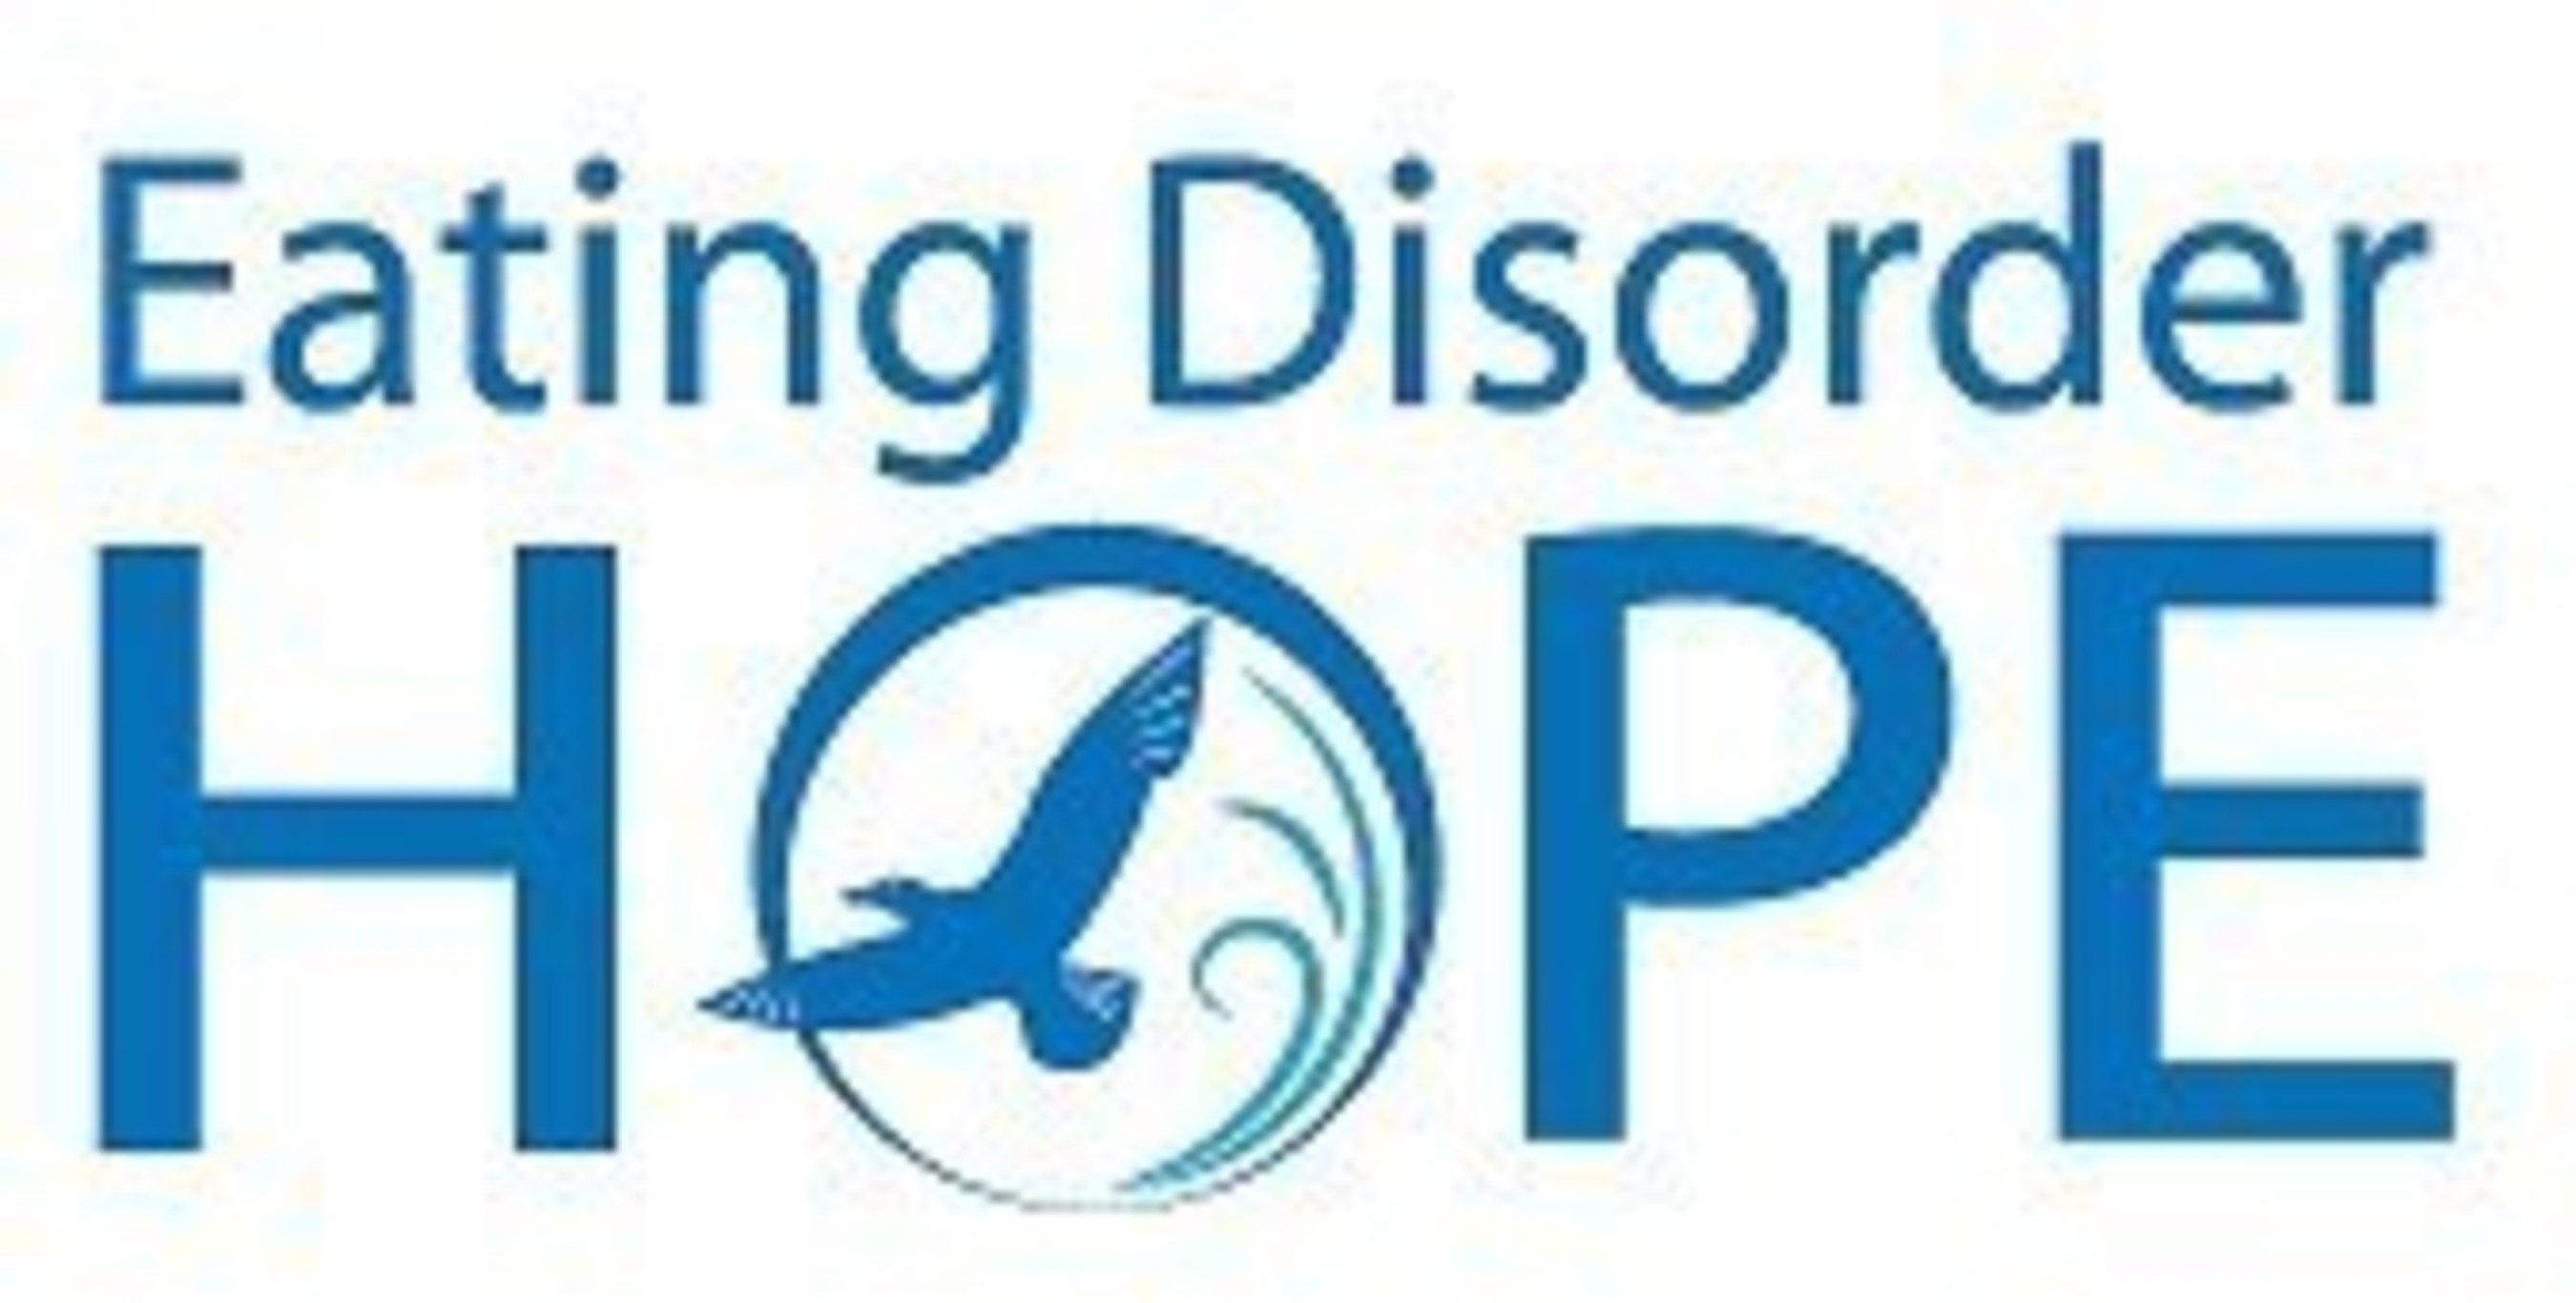 Binge Eating Disorder Forum: Eating Disorder Hope to Host Google Hangout, September 24th at 3pm PST, with Dr. Dena Cabrera, Dr. Kim Dennis and Jessica Setnick, MS, RD